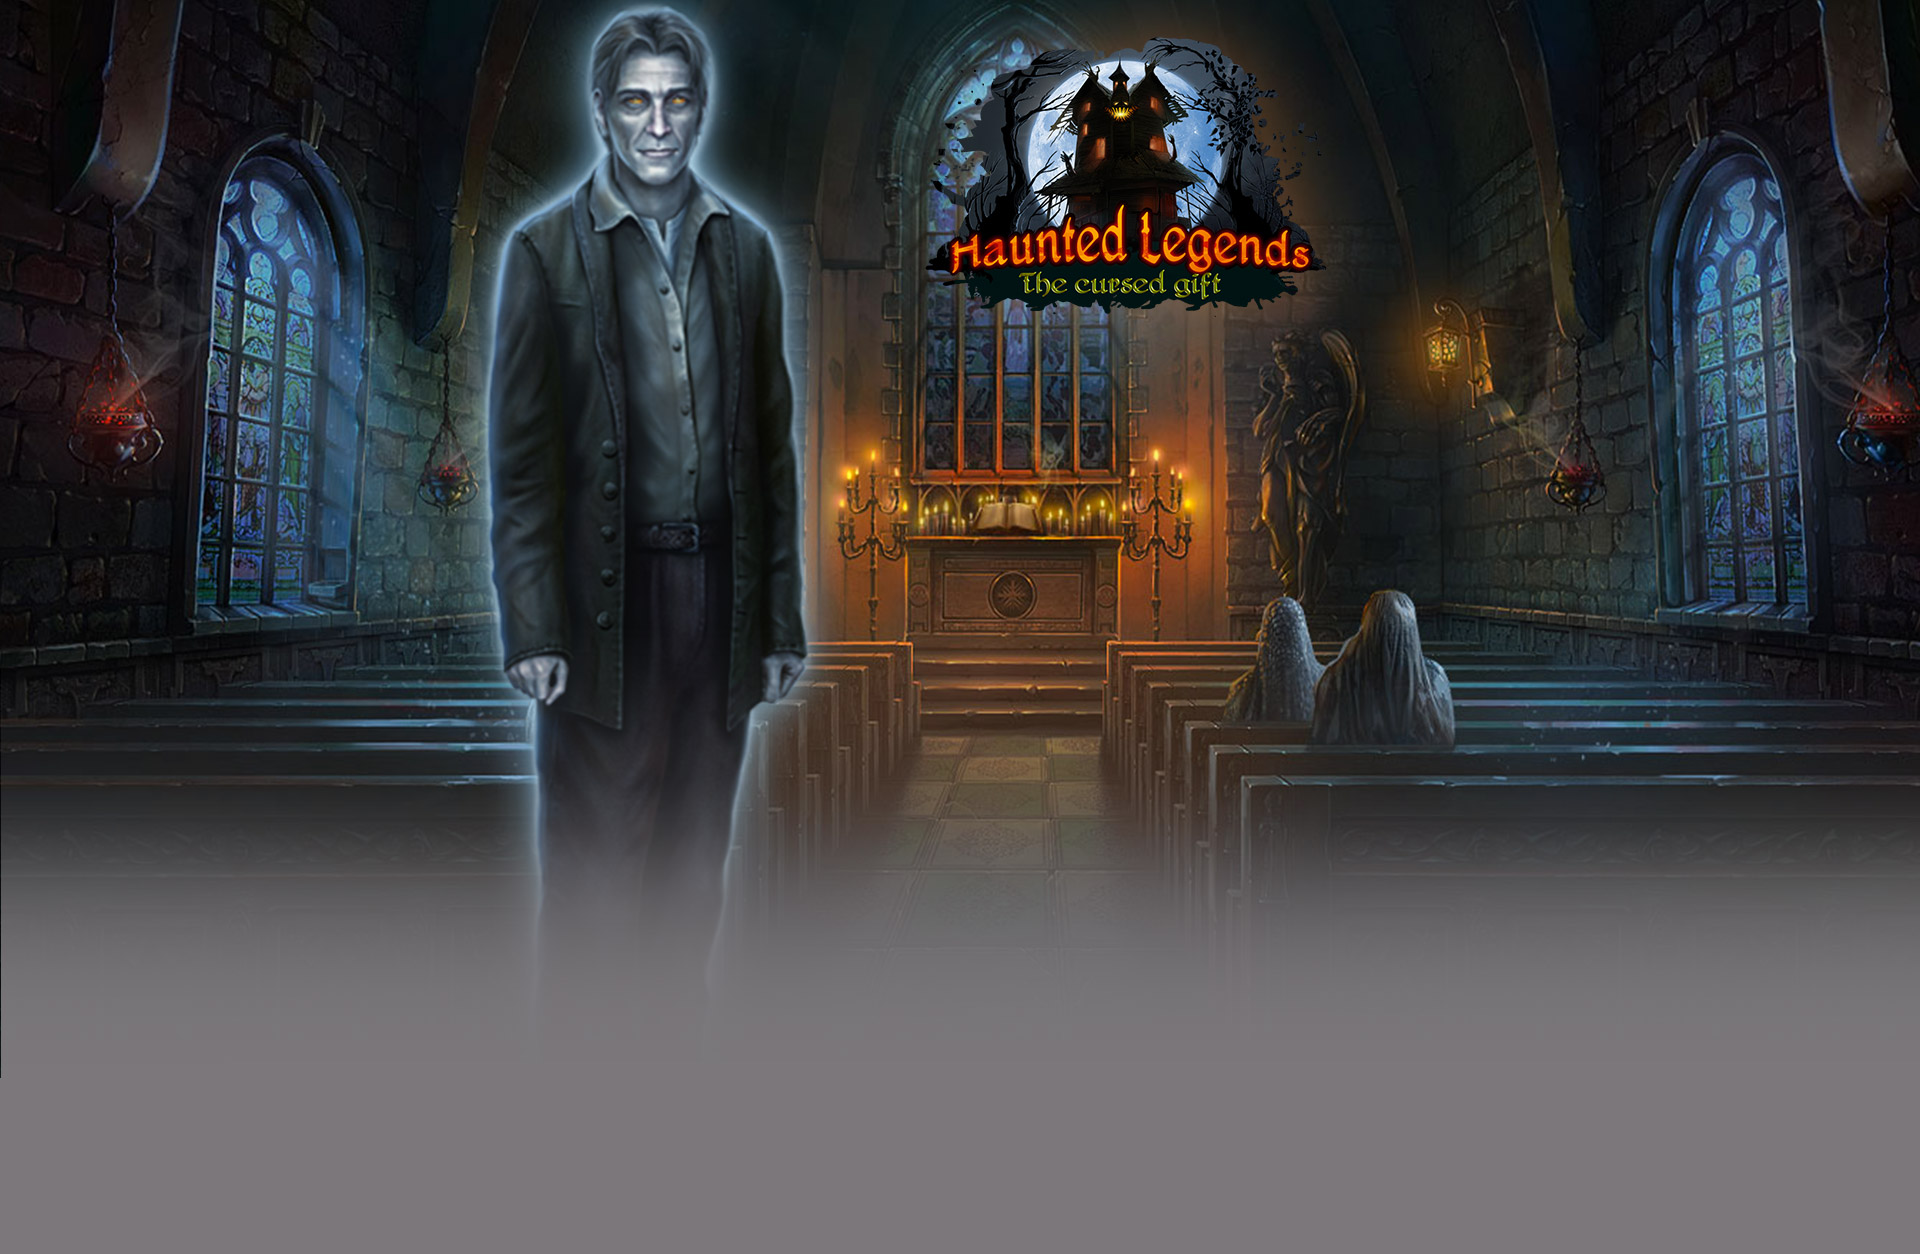 Haunted Legends The Cursed Gift